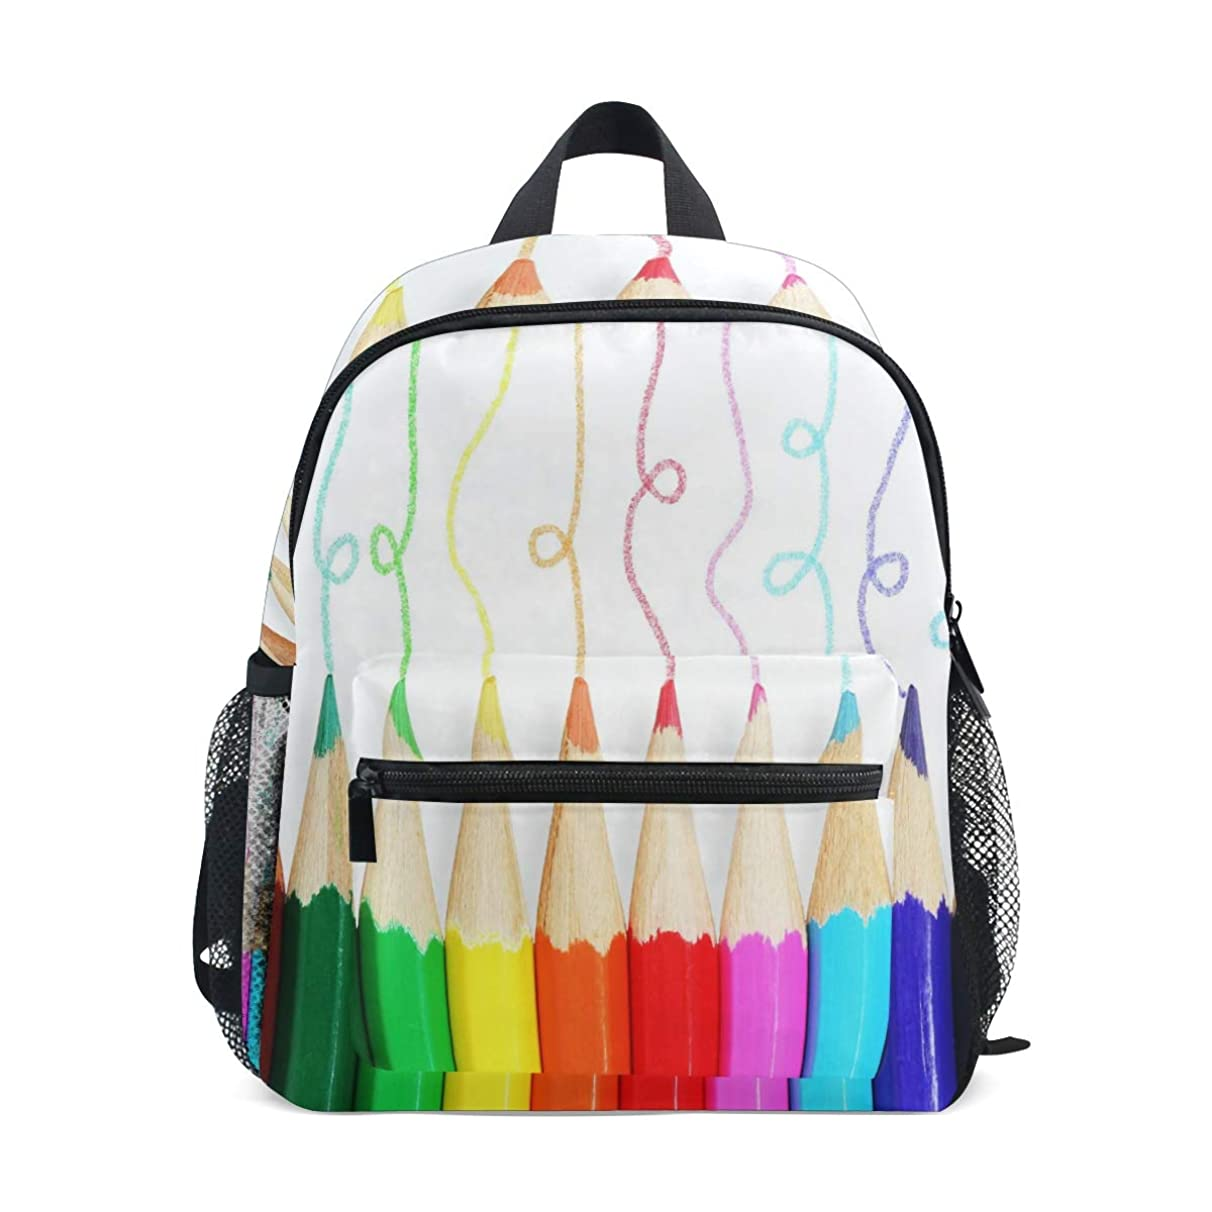 Mini Backpack Colored Pencils Small Bag Daypack Lightweight